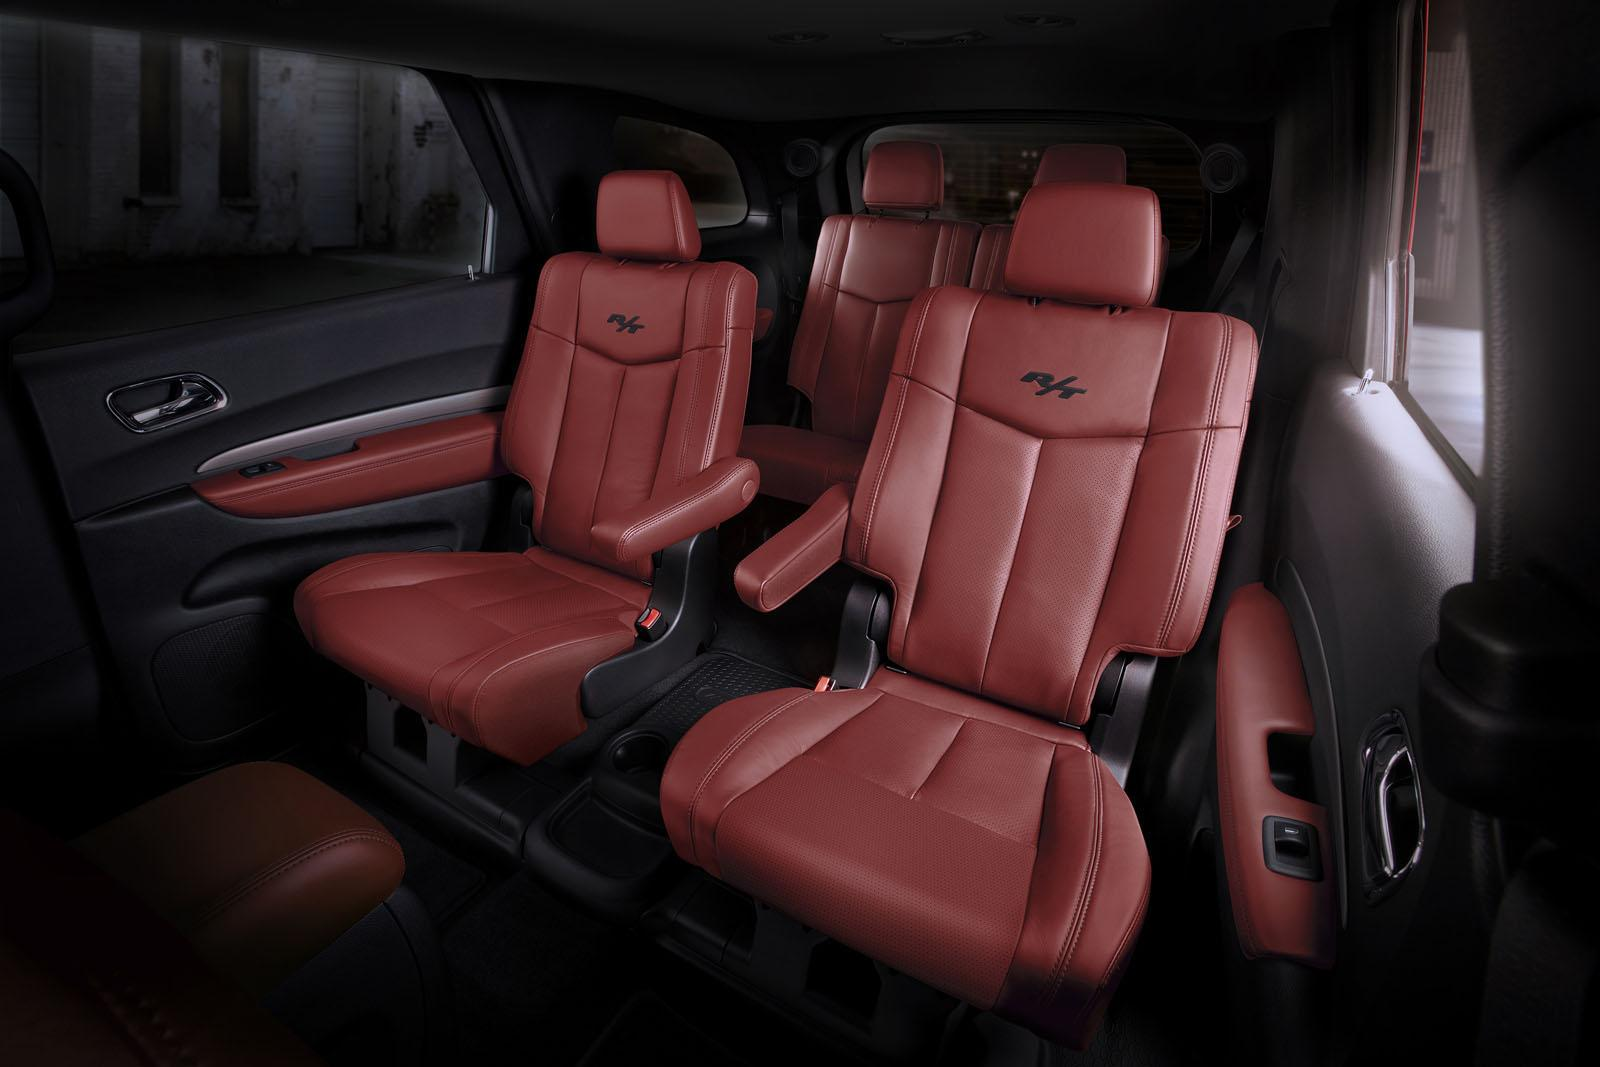 Red Dodge Avenger >> 2015 Dodge Durango Radar Red Nappa Leather Seats Now Available on the R/T Model - autoevolution